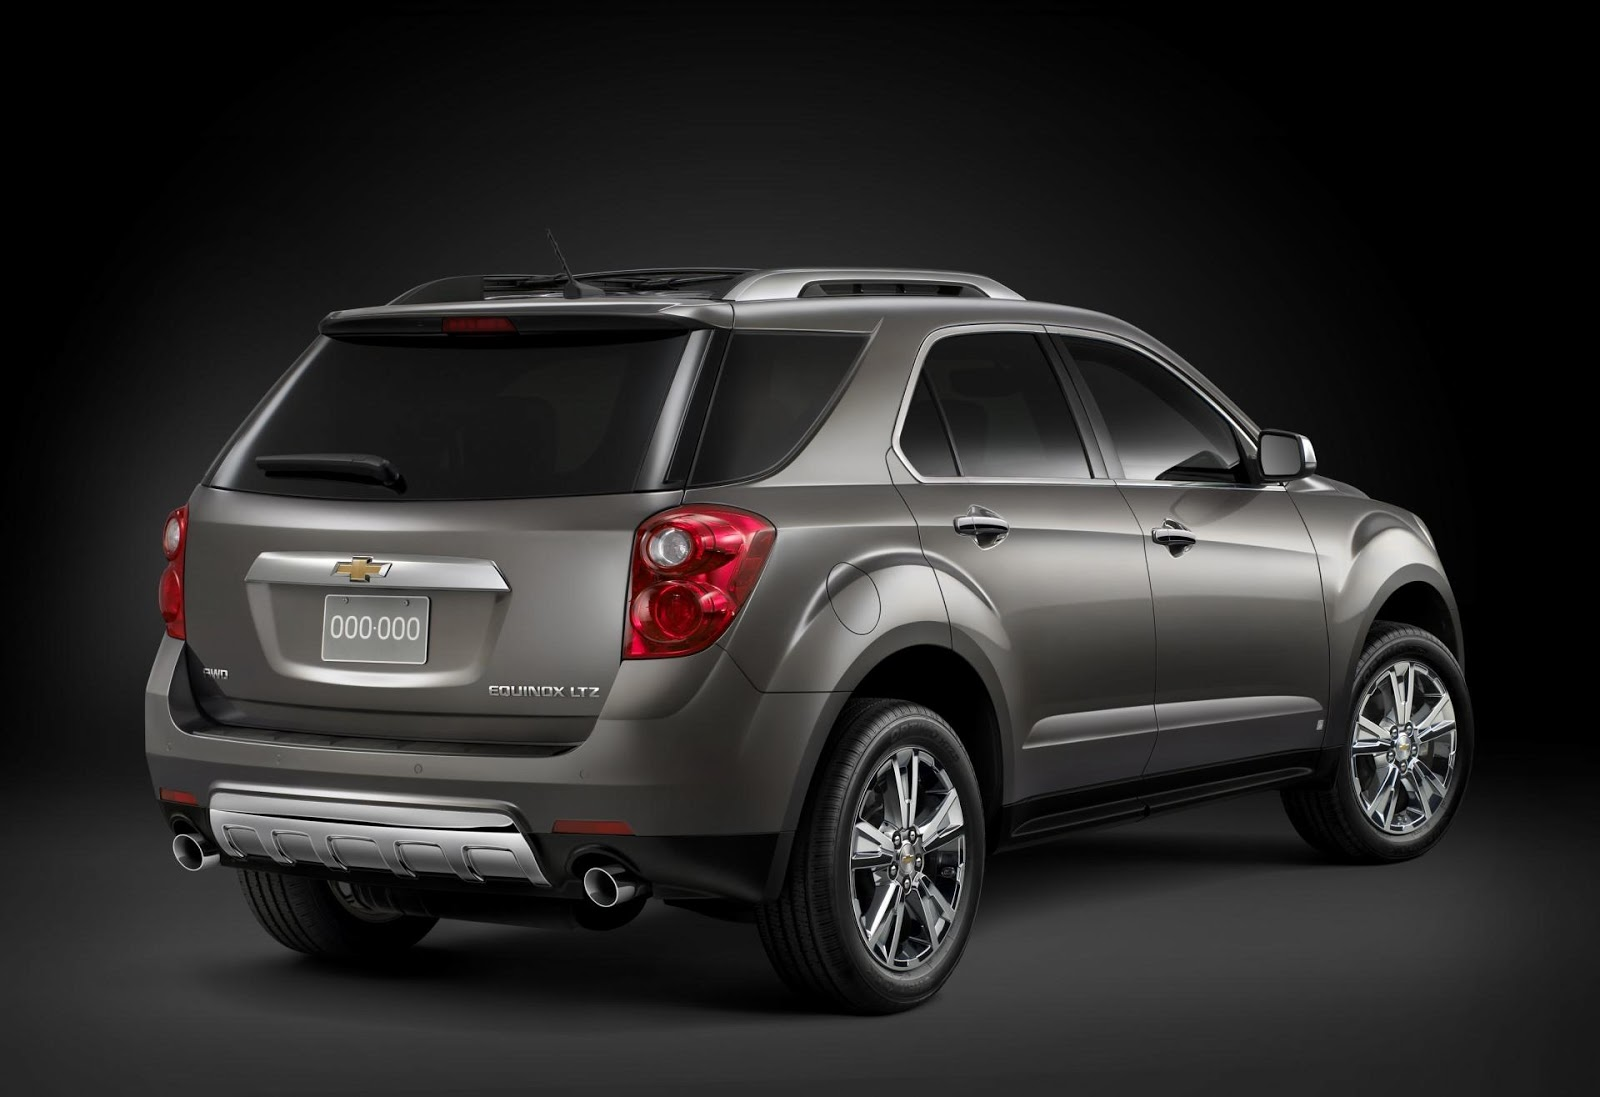 Chevrolet Equinox 2014 | Hottest Car Wallpapers | Bestgarage